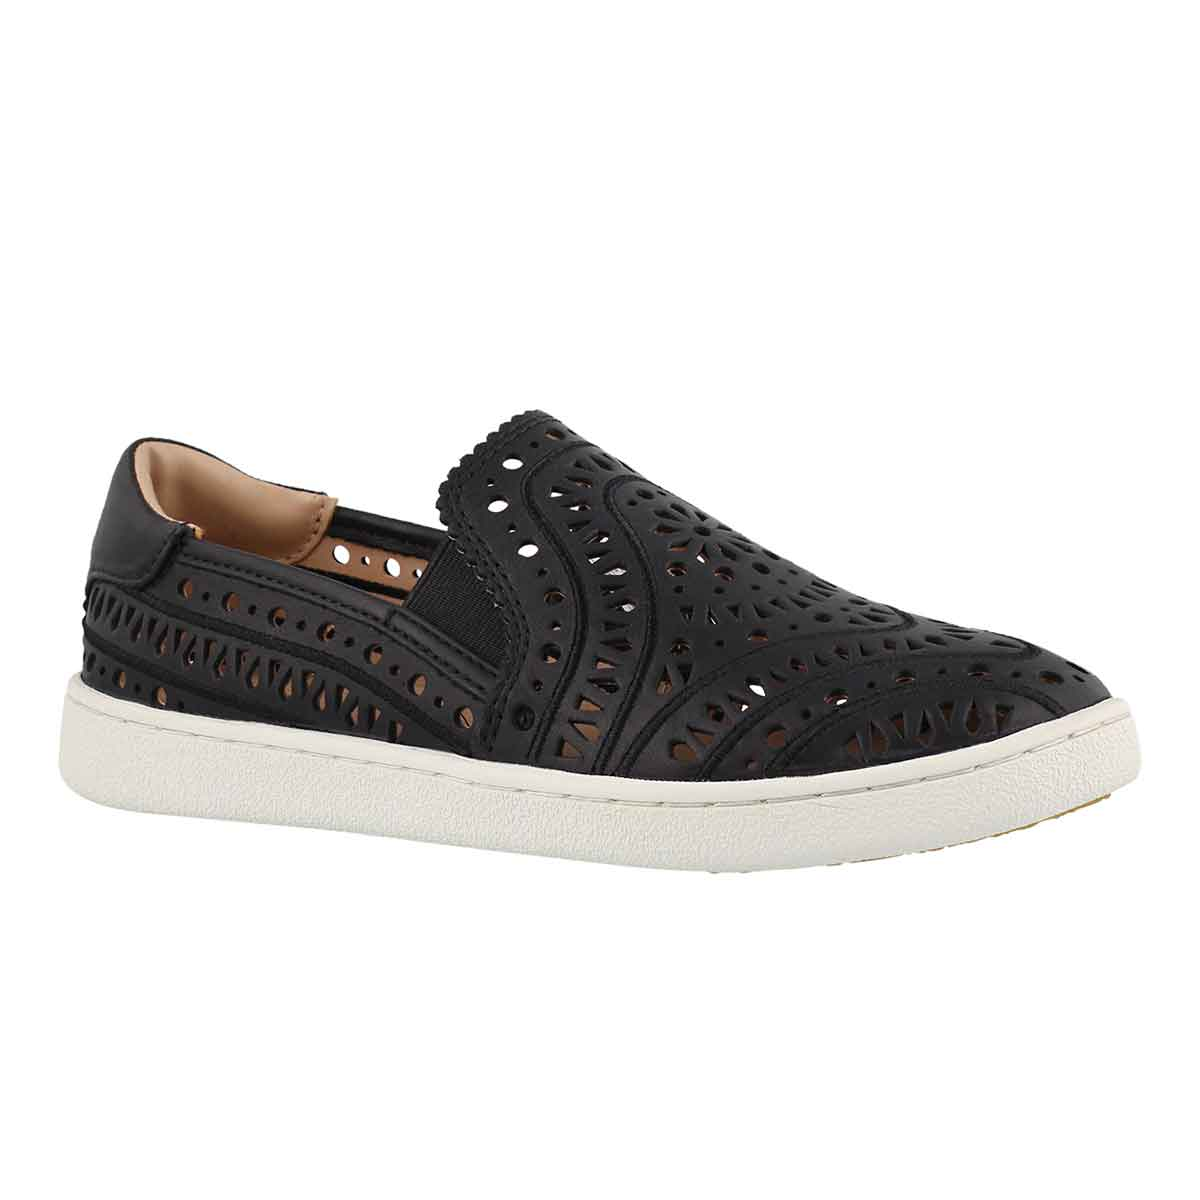 Women's CAS PERF black casual slip on shoes